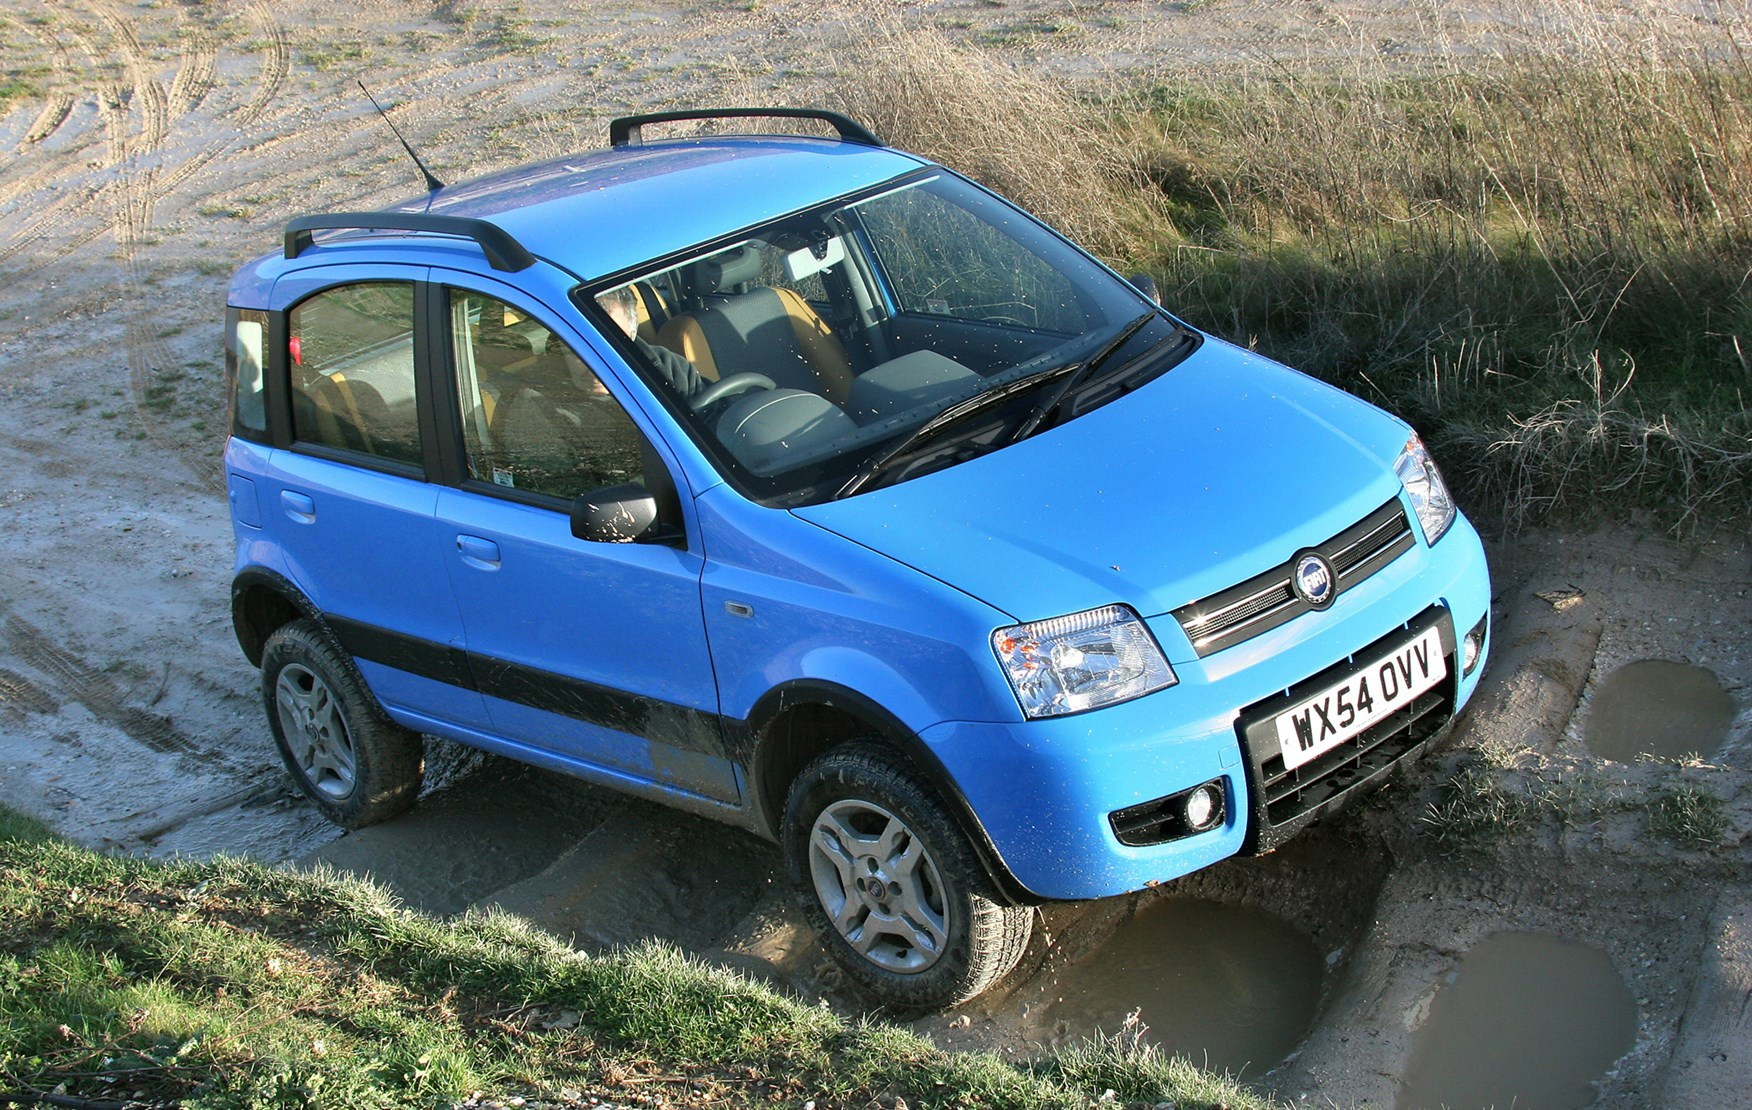 Used Fiat Panda 4x4 (2005 - 2010) MPG | Parkers